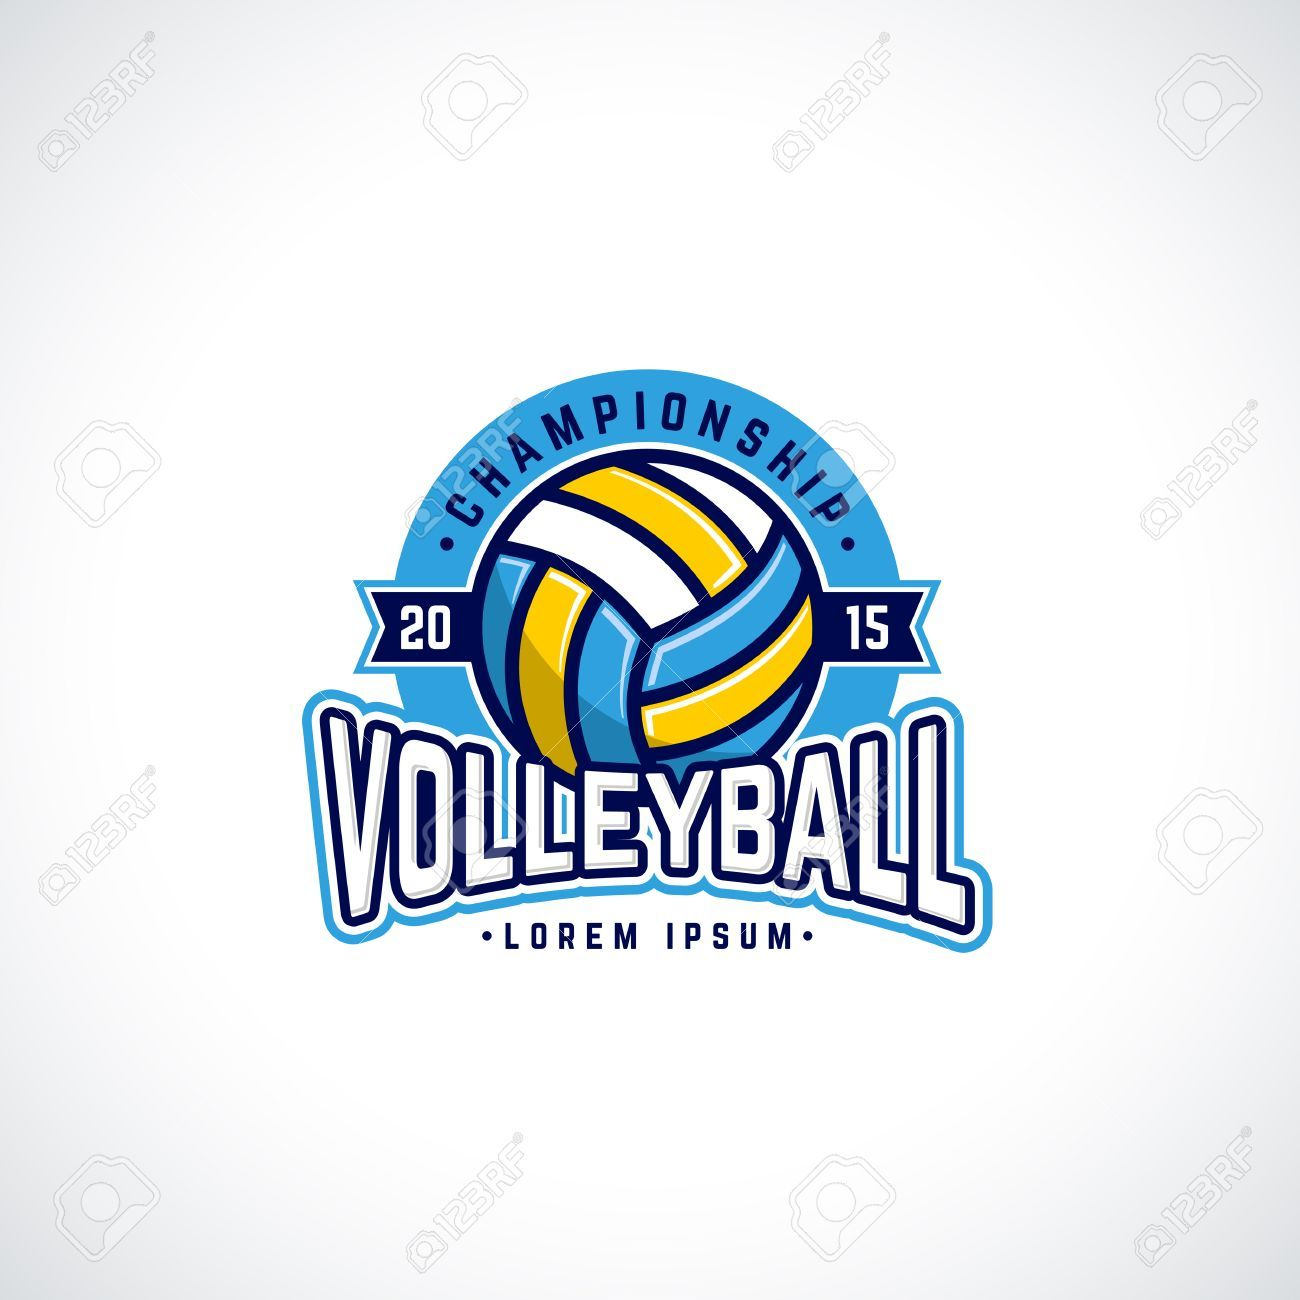 Vector Volleyball Championship Logo With Ball Sport Badge For Tournament Or Championship Illustration Ad Championship Logo Vector Volleyball Ball